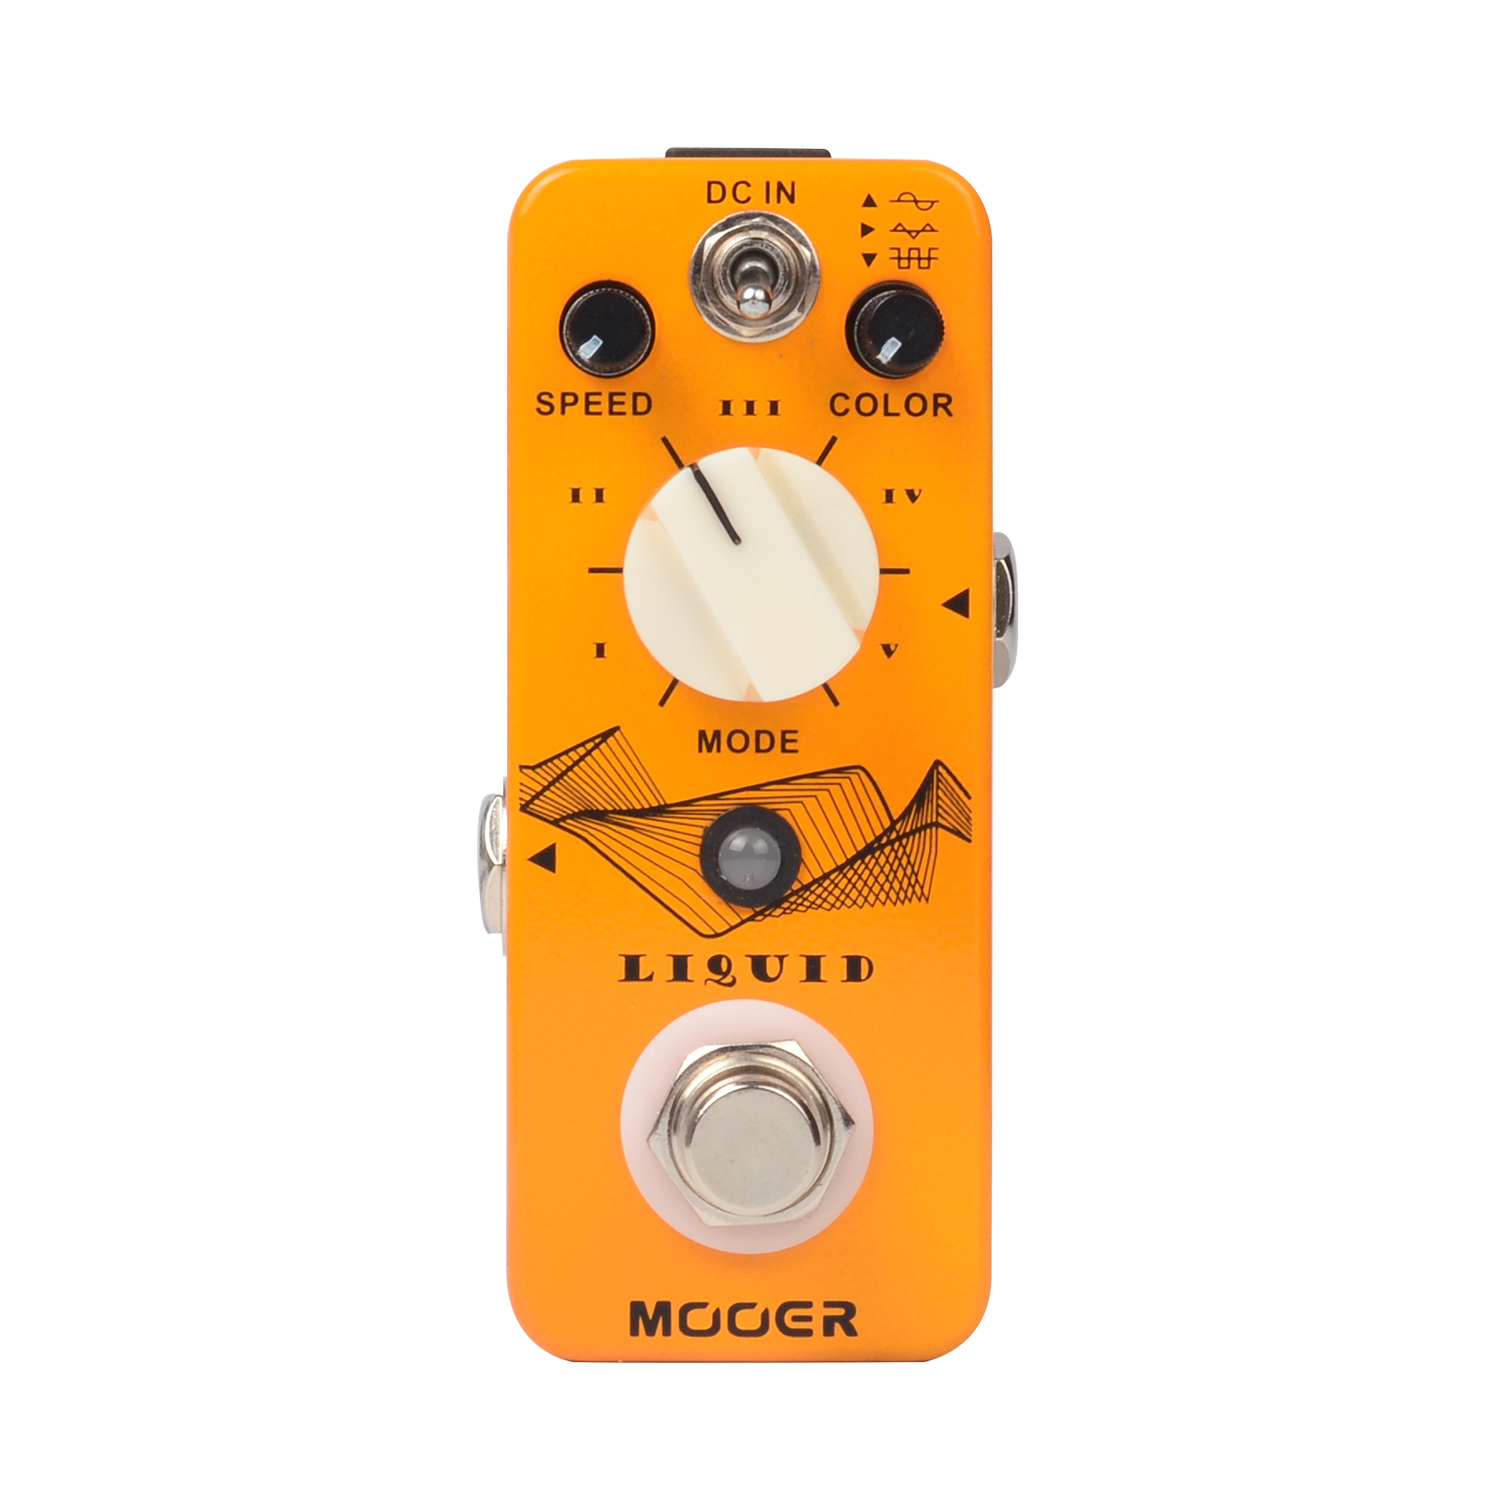 Mooer Liquid Digital Phaser Electric Guitar Effect Pedal Speed Color and Mix Controls Pocket  Size True Bypass Full Matel Shell mooer ninety orange phaser guitar effect pedal micro analog effects true bypass with free connector and footswitch topper